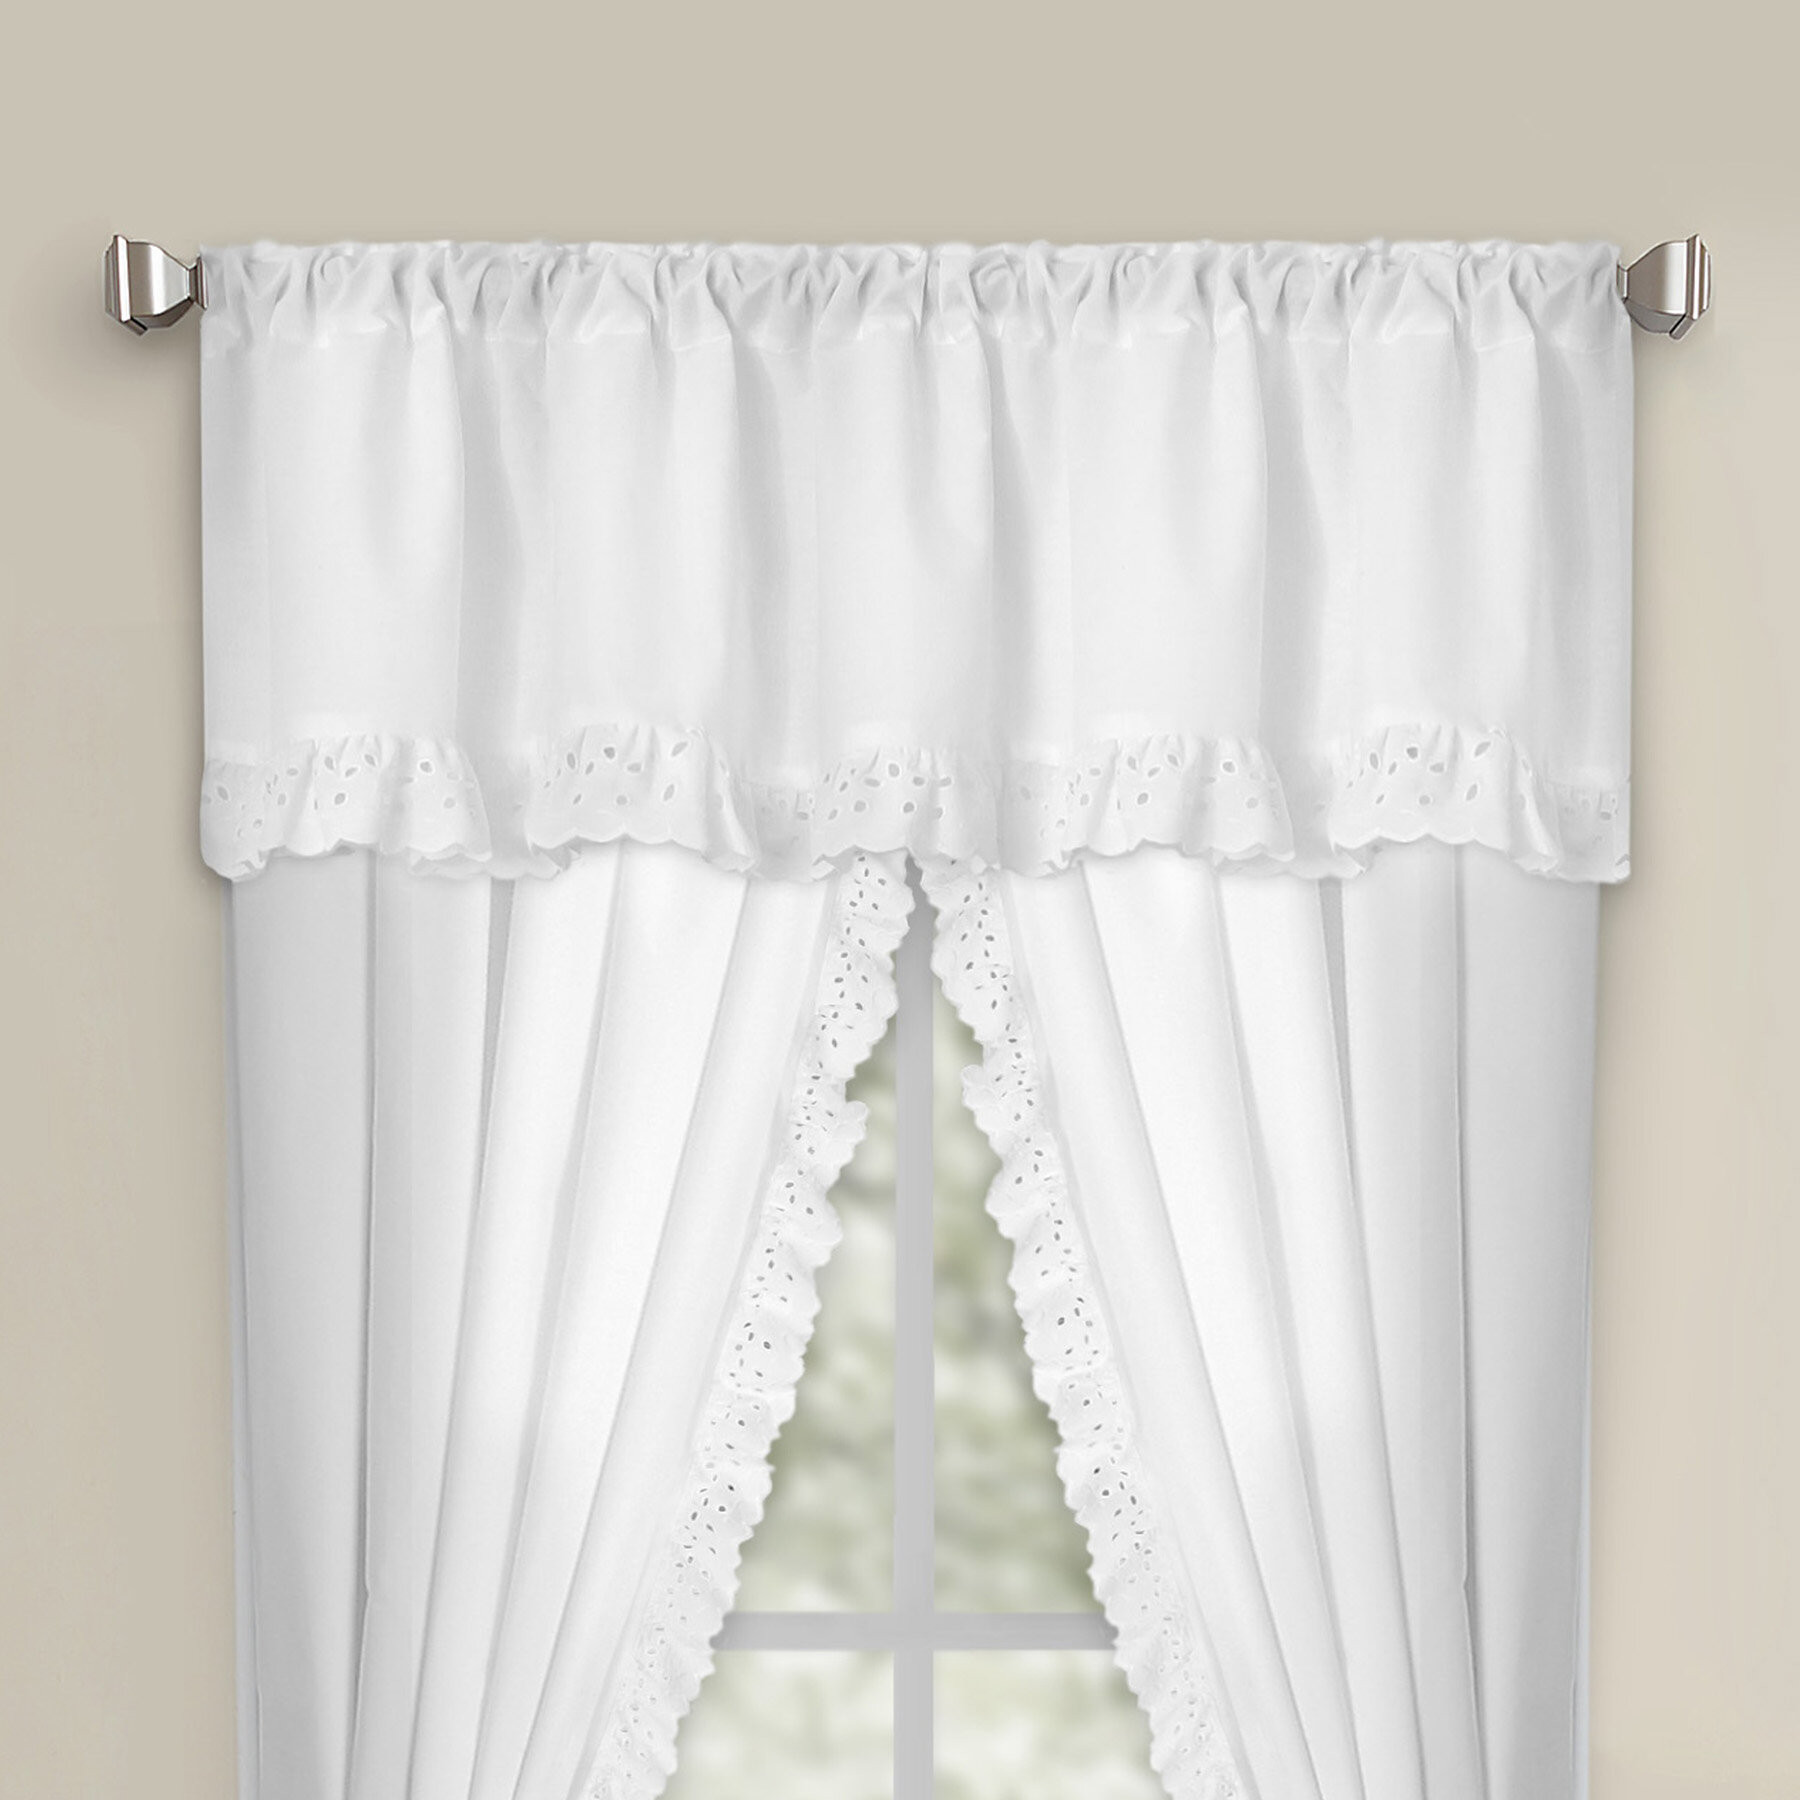 Fresh Ideas Eyelet Rod Pocket Curtain Valance Ebay